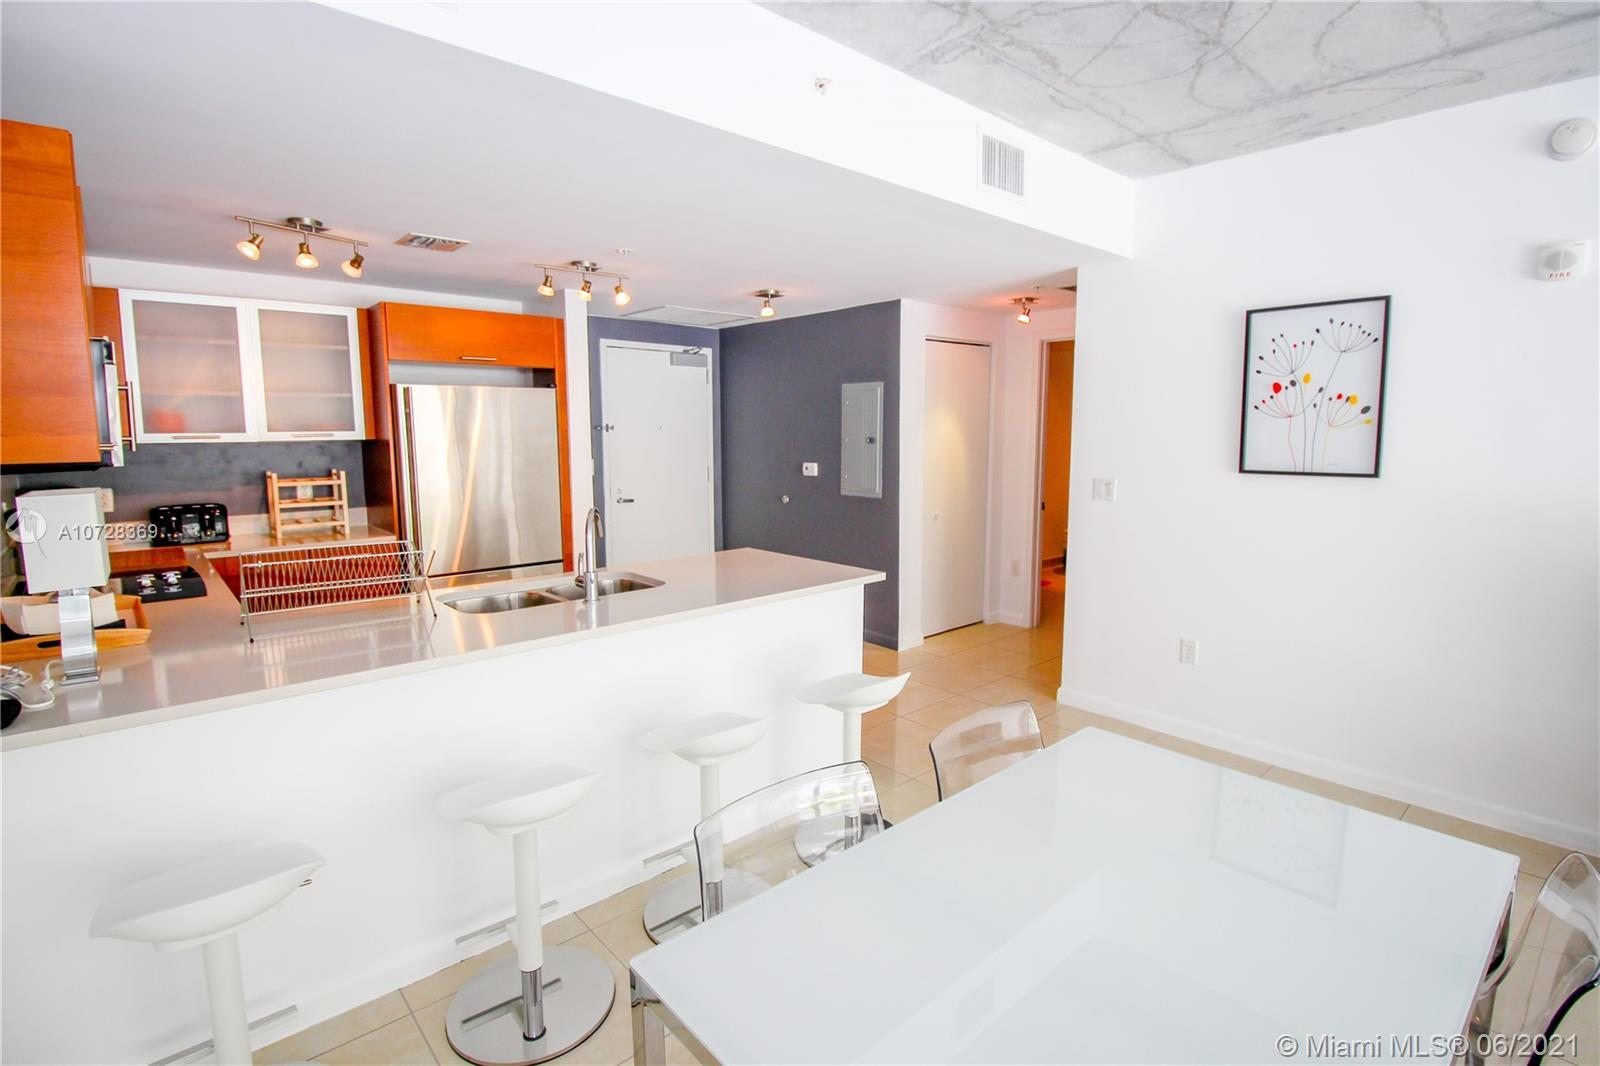 Amazing unit at Midblock condo. short term/airbnb ok. Direct access to amenities from private terrac